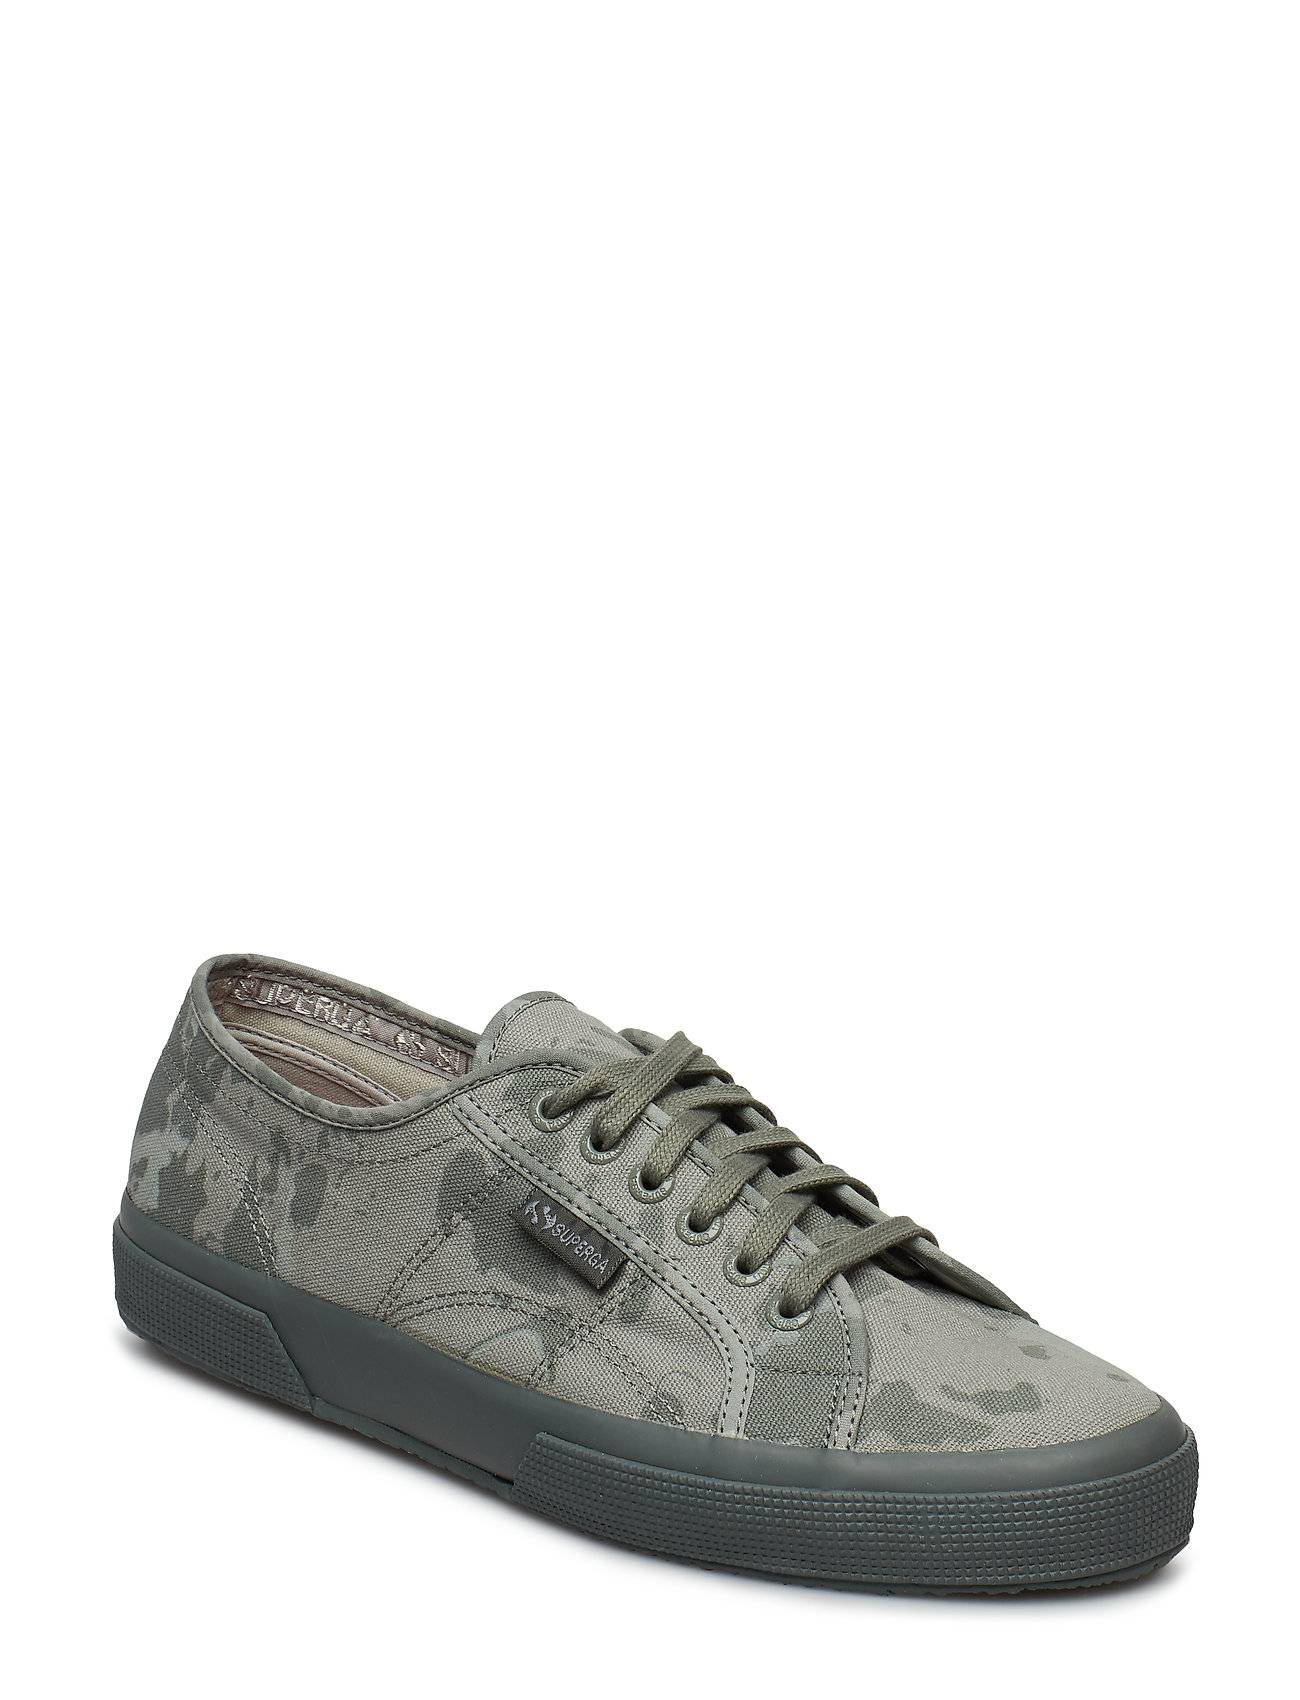 Superga 2750 Fancotu Matalavartiset Sneakerit Tennarit Harmaa